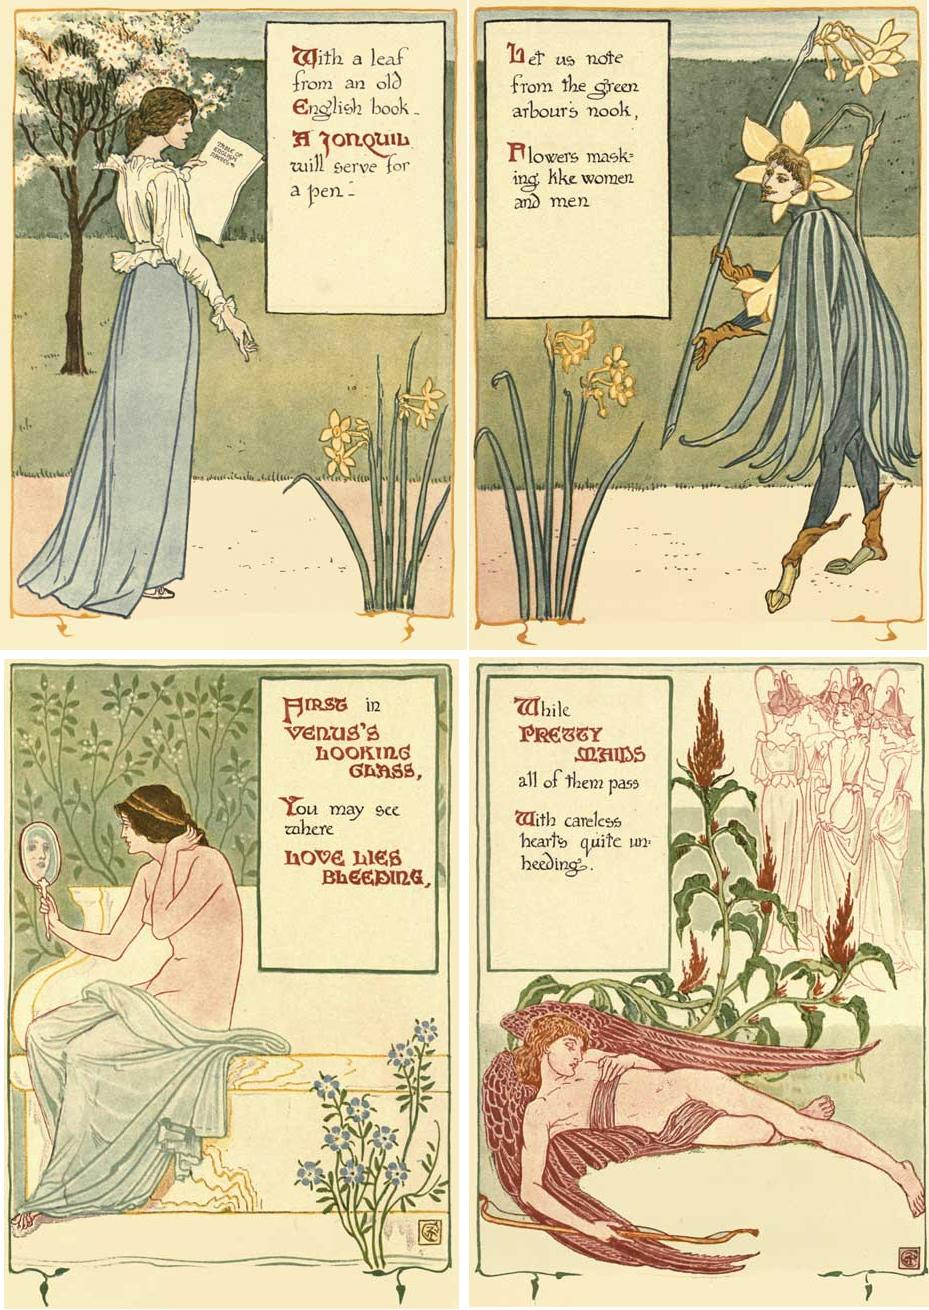 Jonquil,VENUS'S LOOKING GLASS,LOVE LIES BLEEDING,PRETTY MAIDS